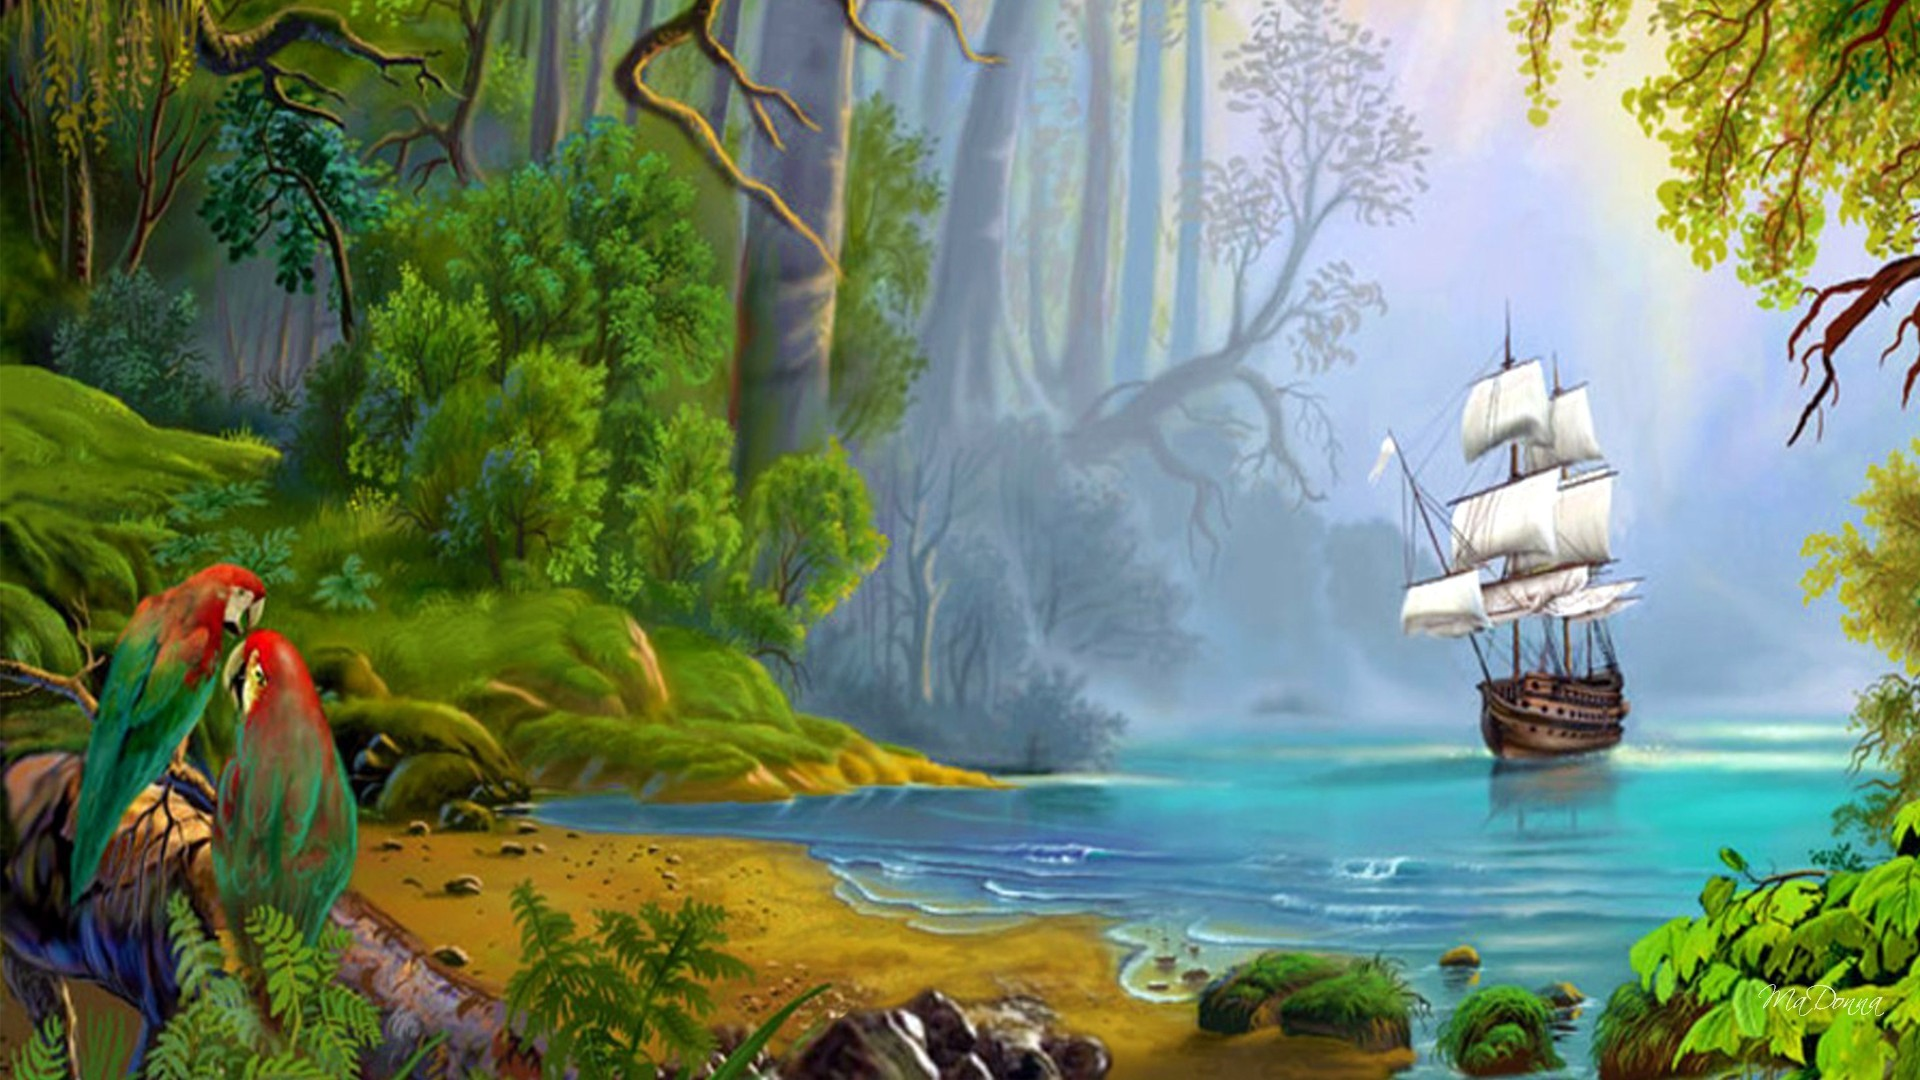 1920x1080 Tropics Tag - Island Trees Jungle Fantasy Tall Morning Ship Beach Mist  Sailing Light Tropics Pirate